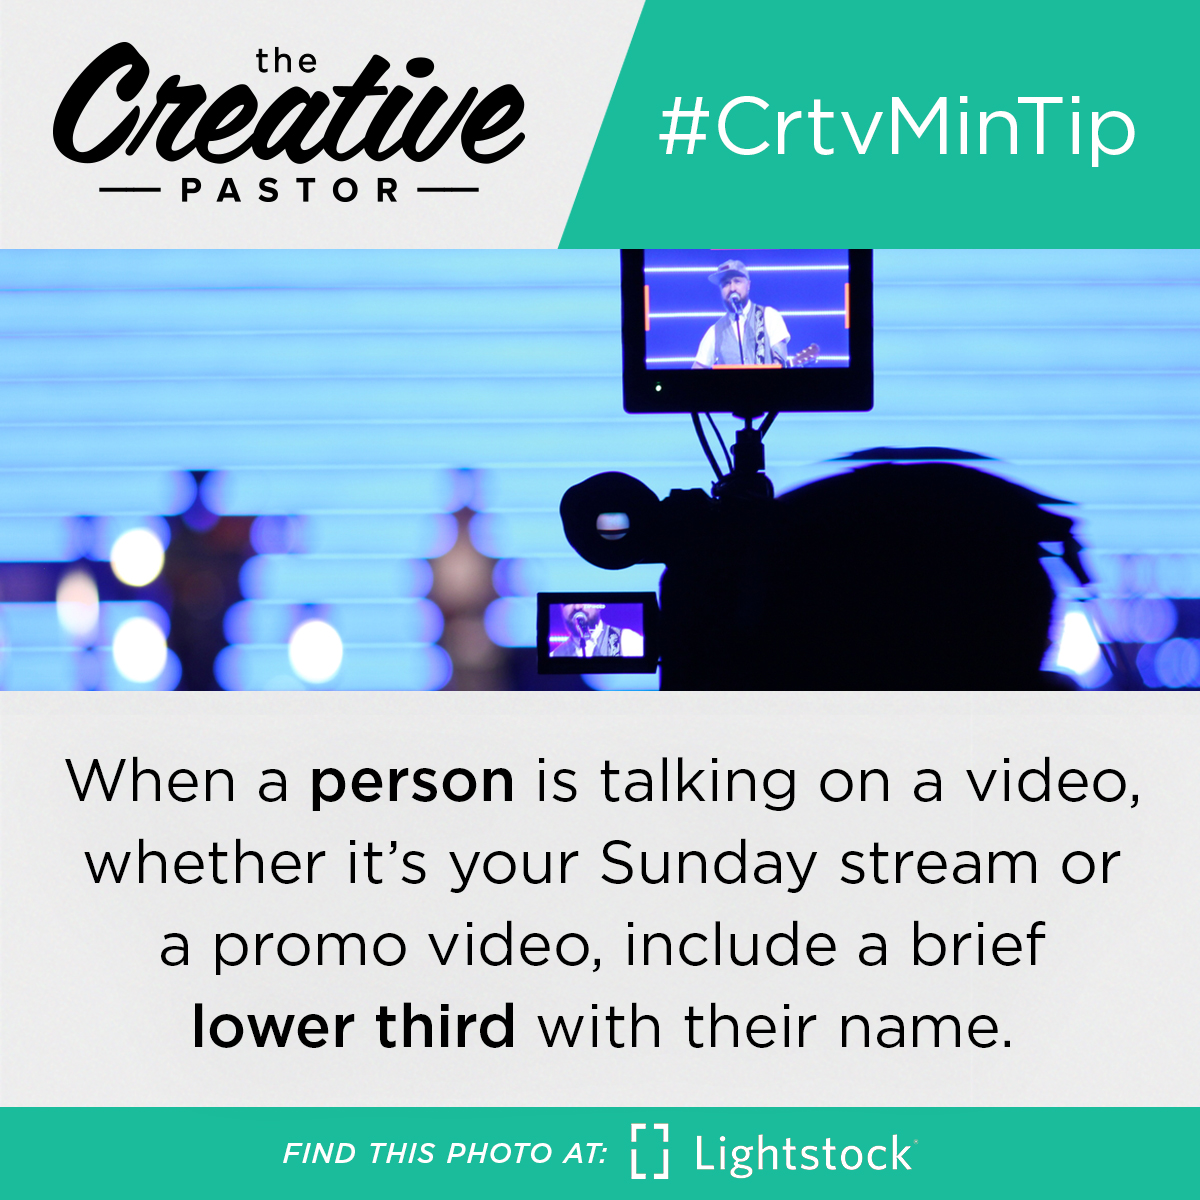 #CrtvMinTip: When you have a person talking on a video, whether it's your Sunday stream or a promo video, include a brief lower third with their name.